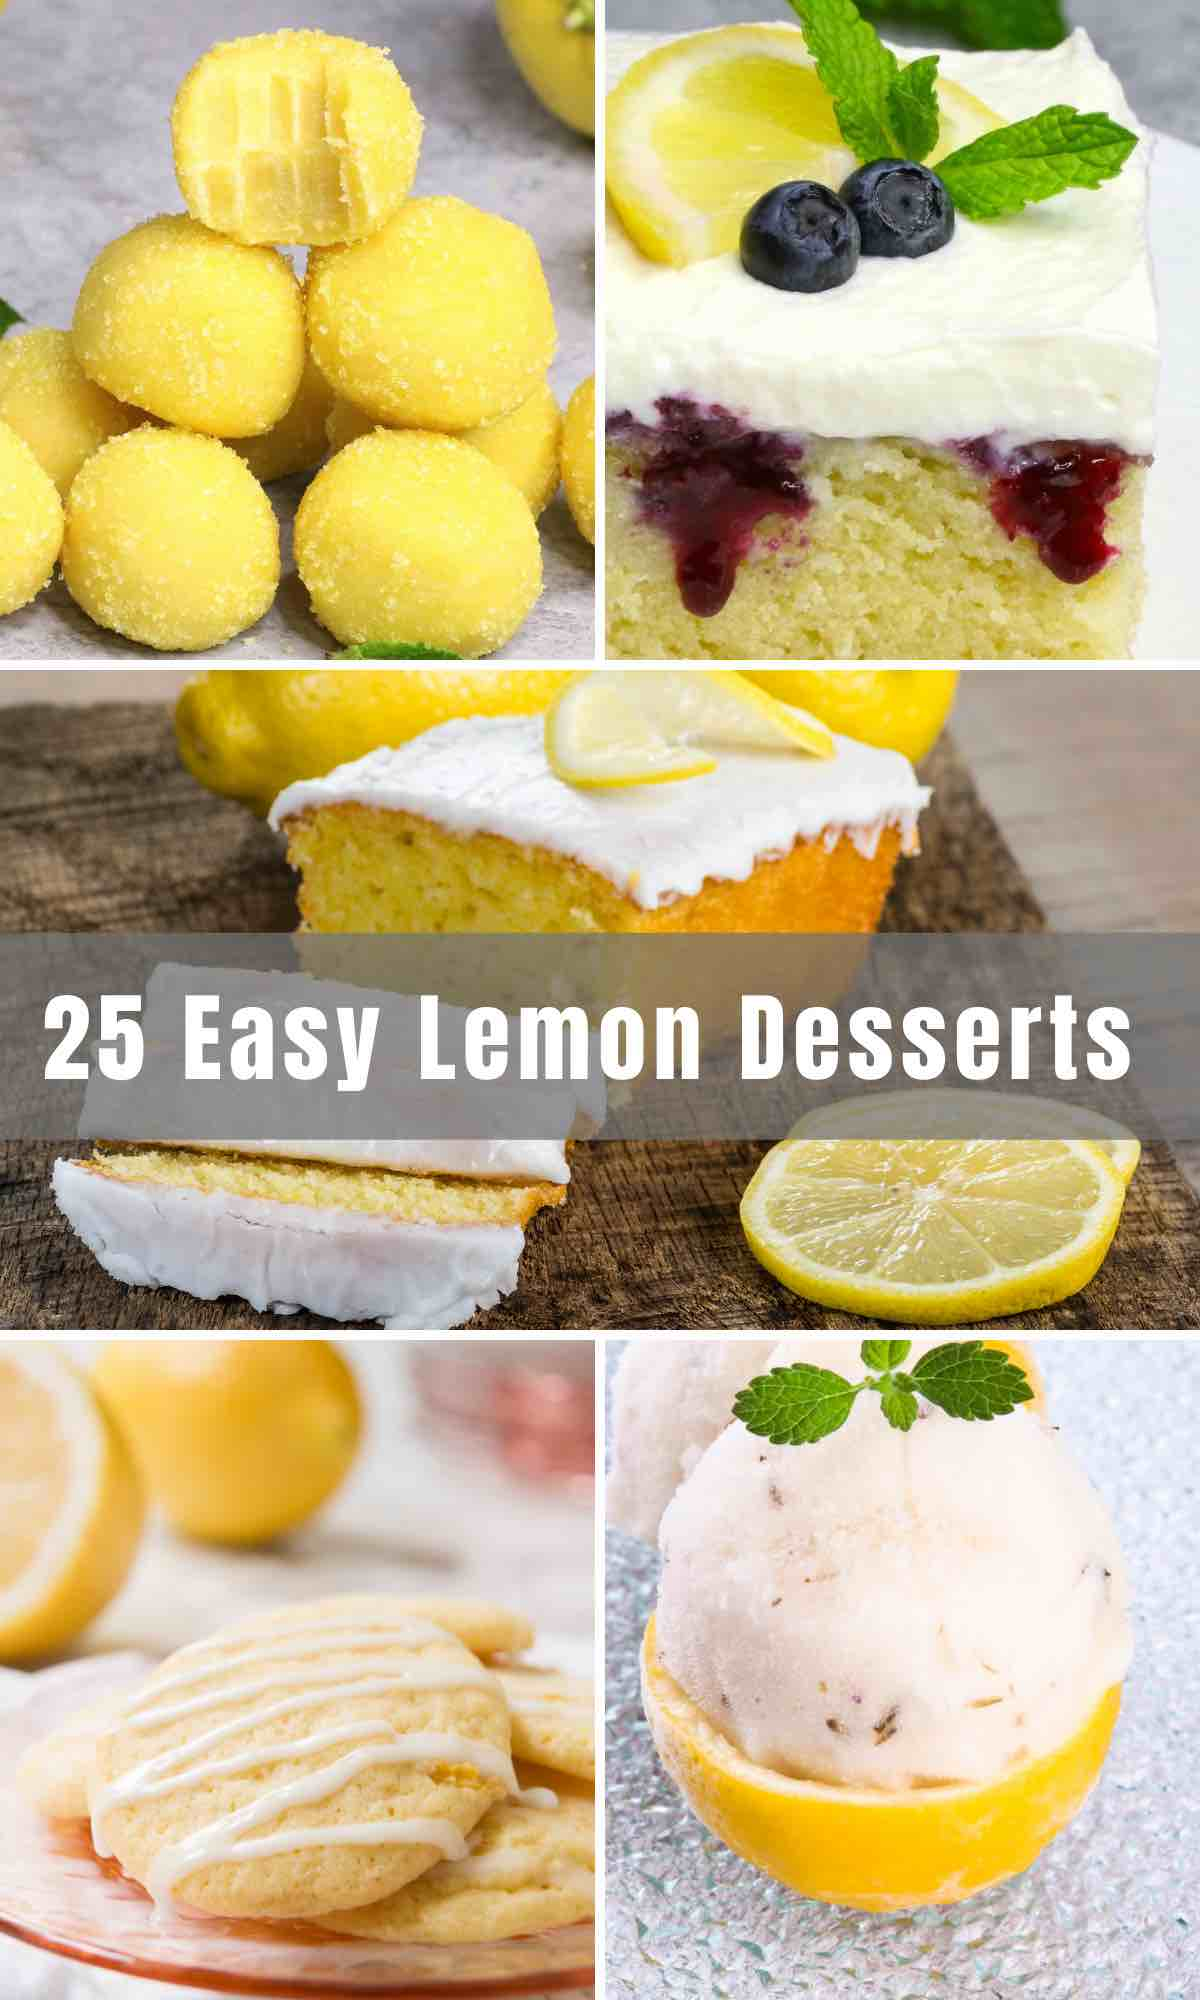 When life gives you lemons, make dessert! From pies to cookies to cakes, lemon-based treats are beloved for their tangy, citrusy, and sweet taste. If you have this fruit on hand, try out some Easy Lemon Desserts Recipes!